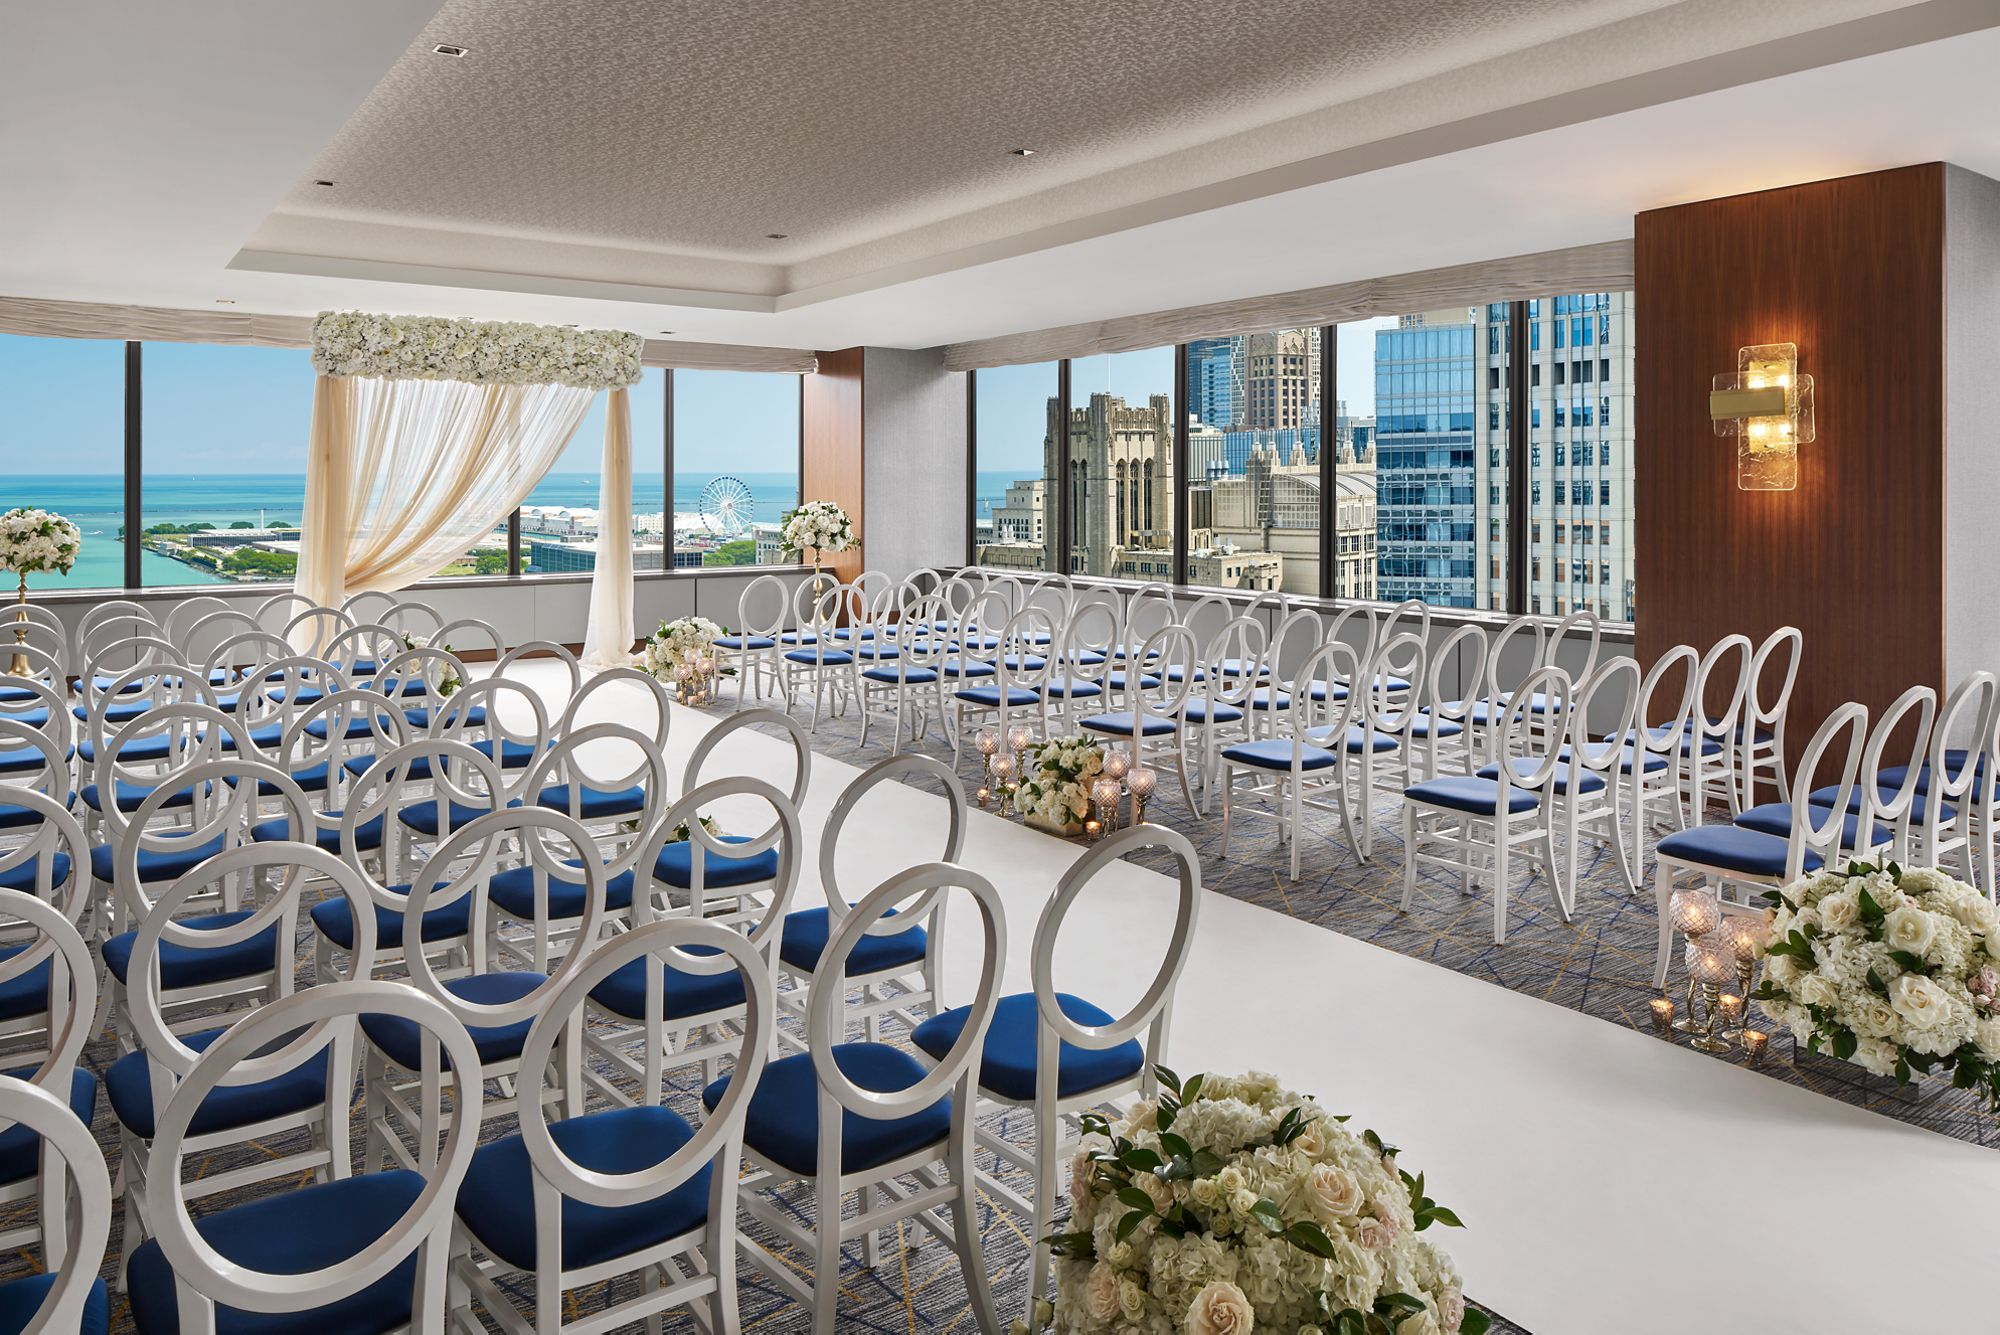 Wedding Venues Chicago.Downtown Chicago Luxury Wedding Venues The Ritz Carlton Chicago